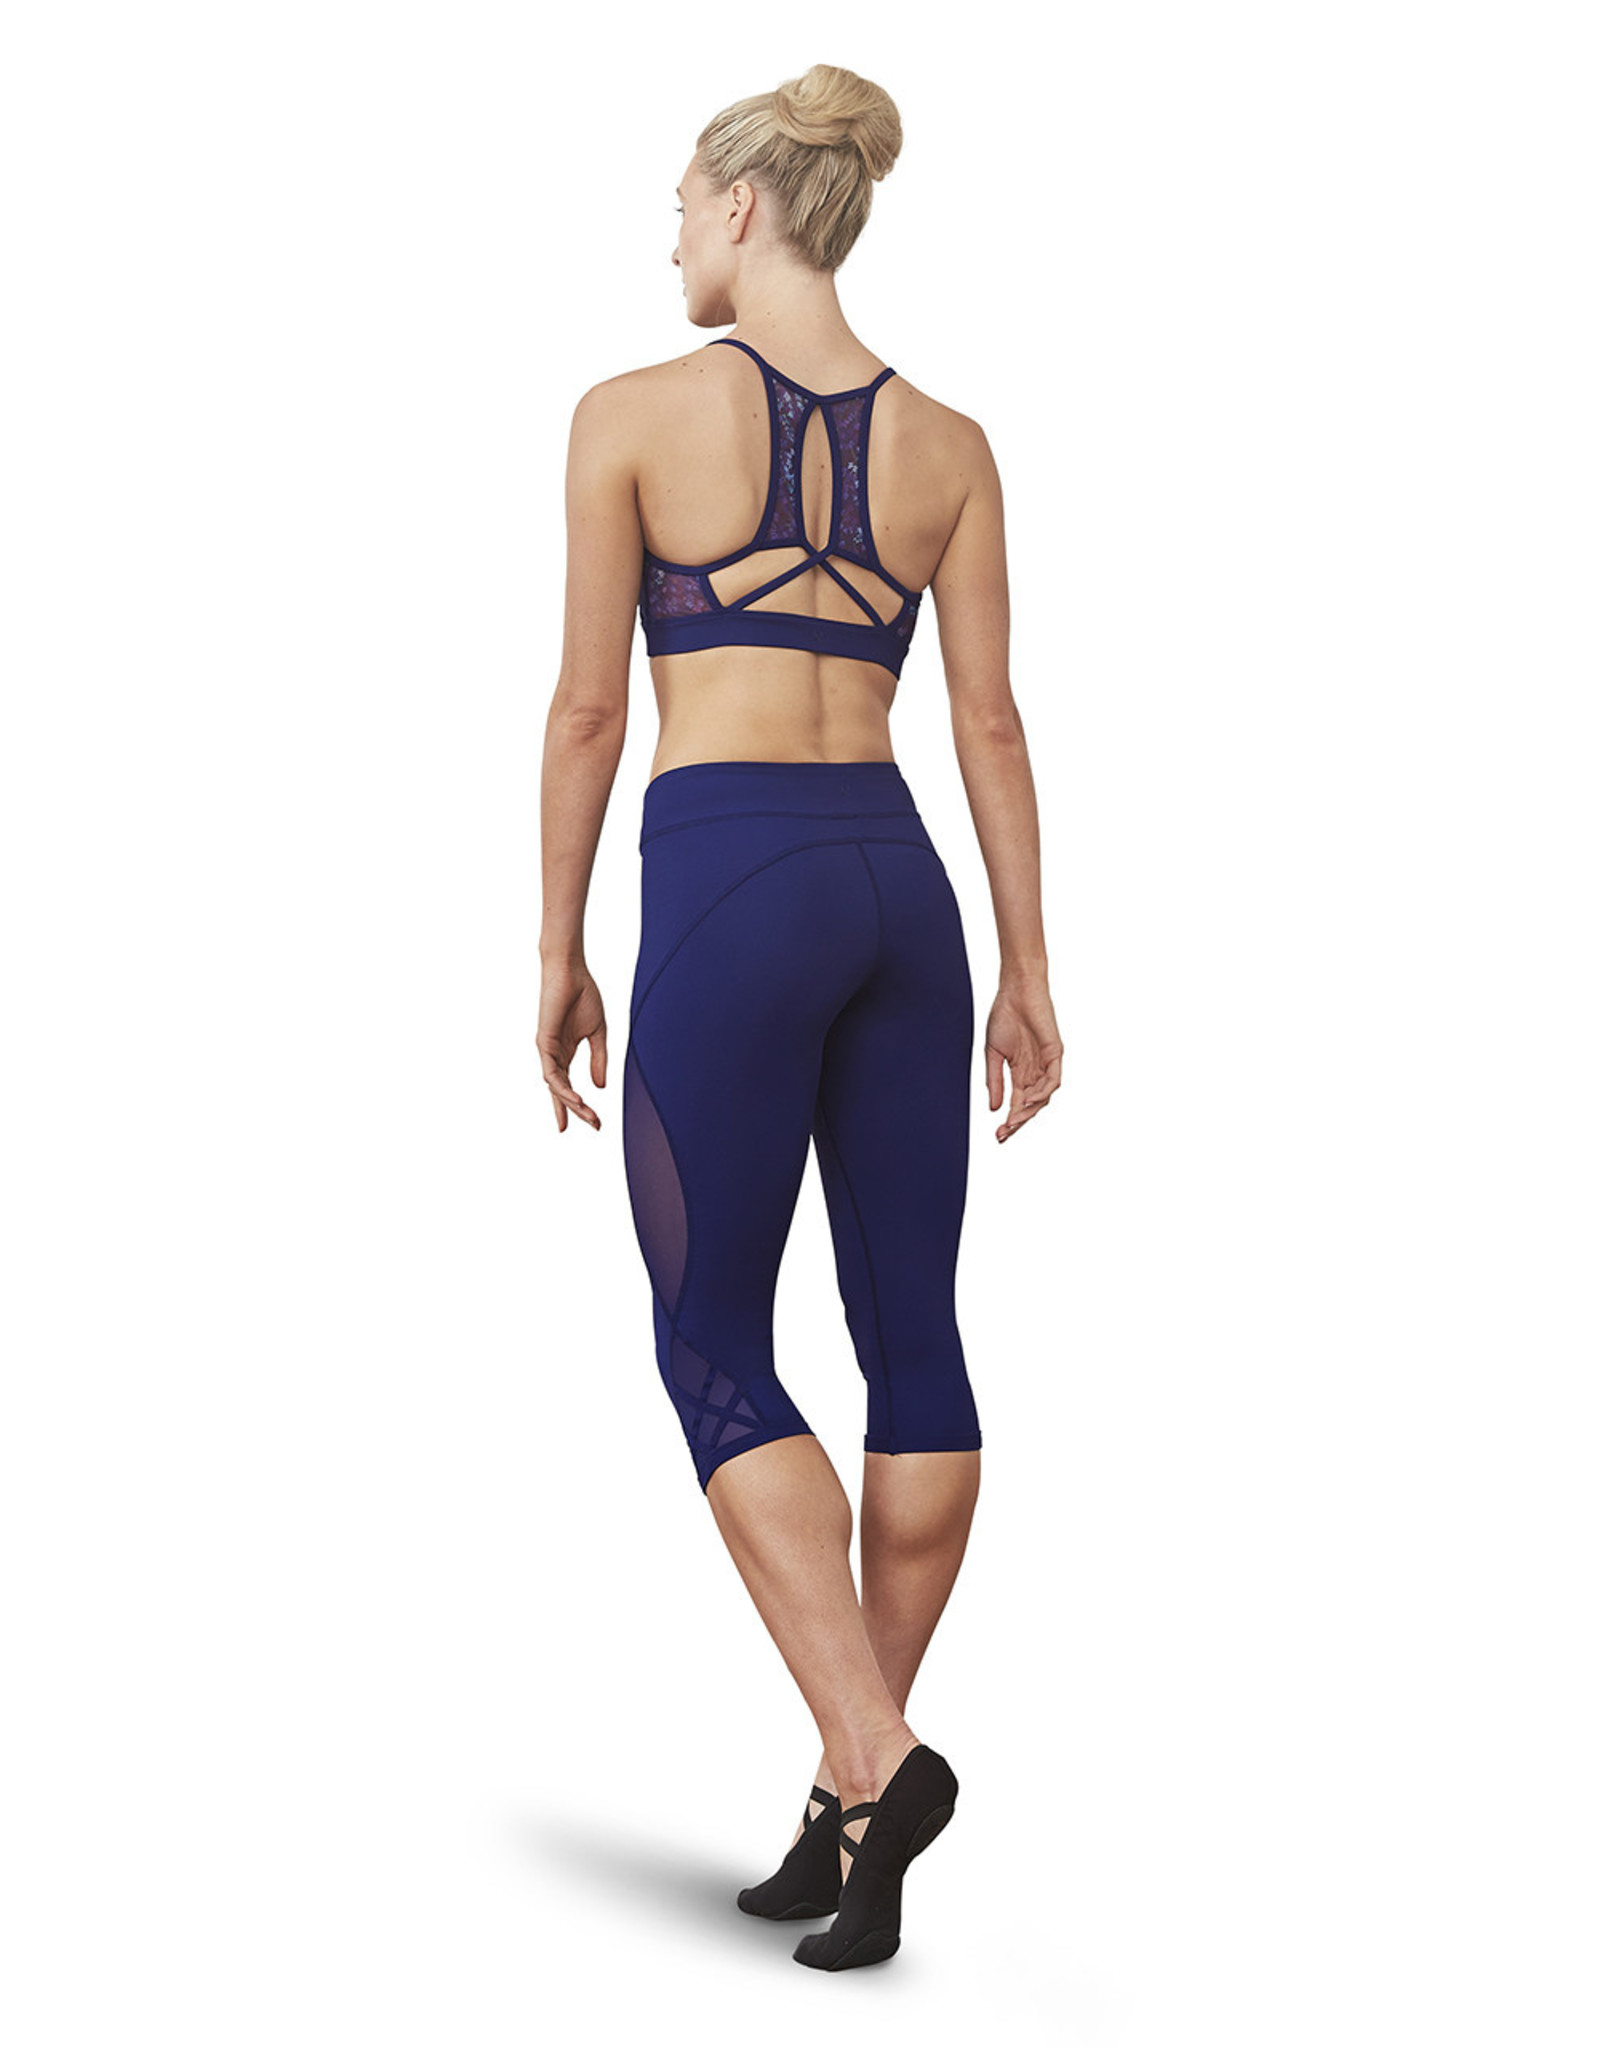 Bloch / Mirella X-back cami crop top (FT5145B)